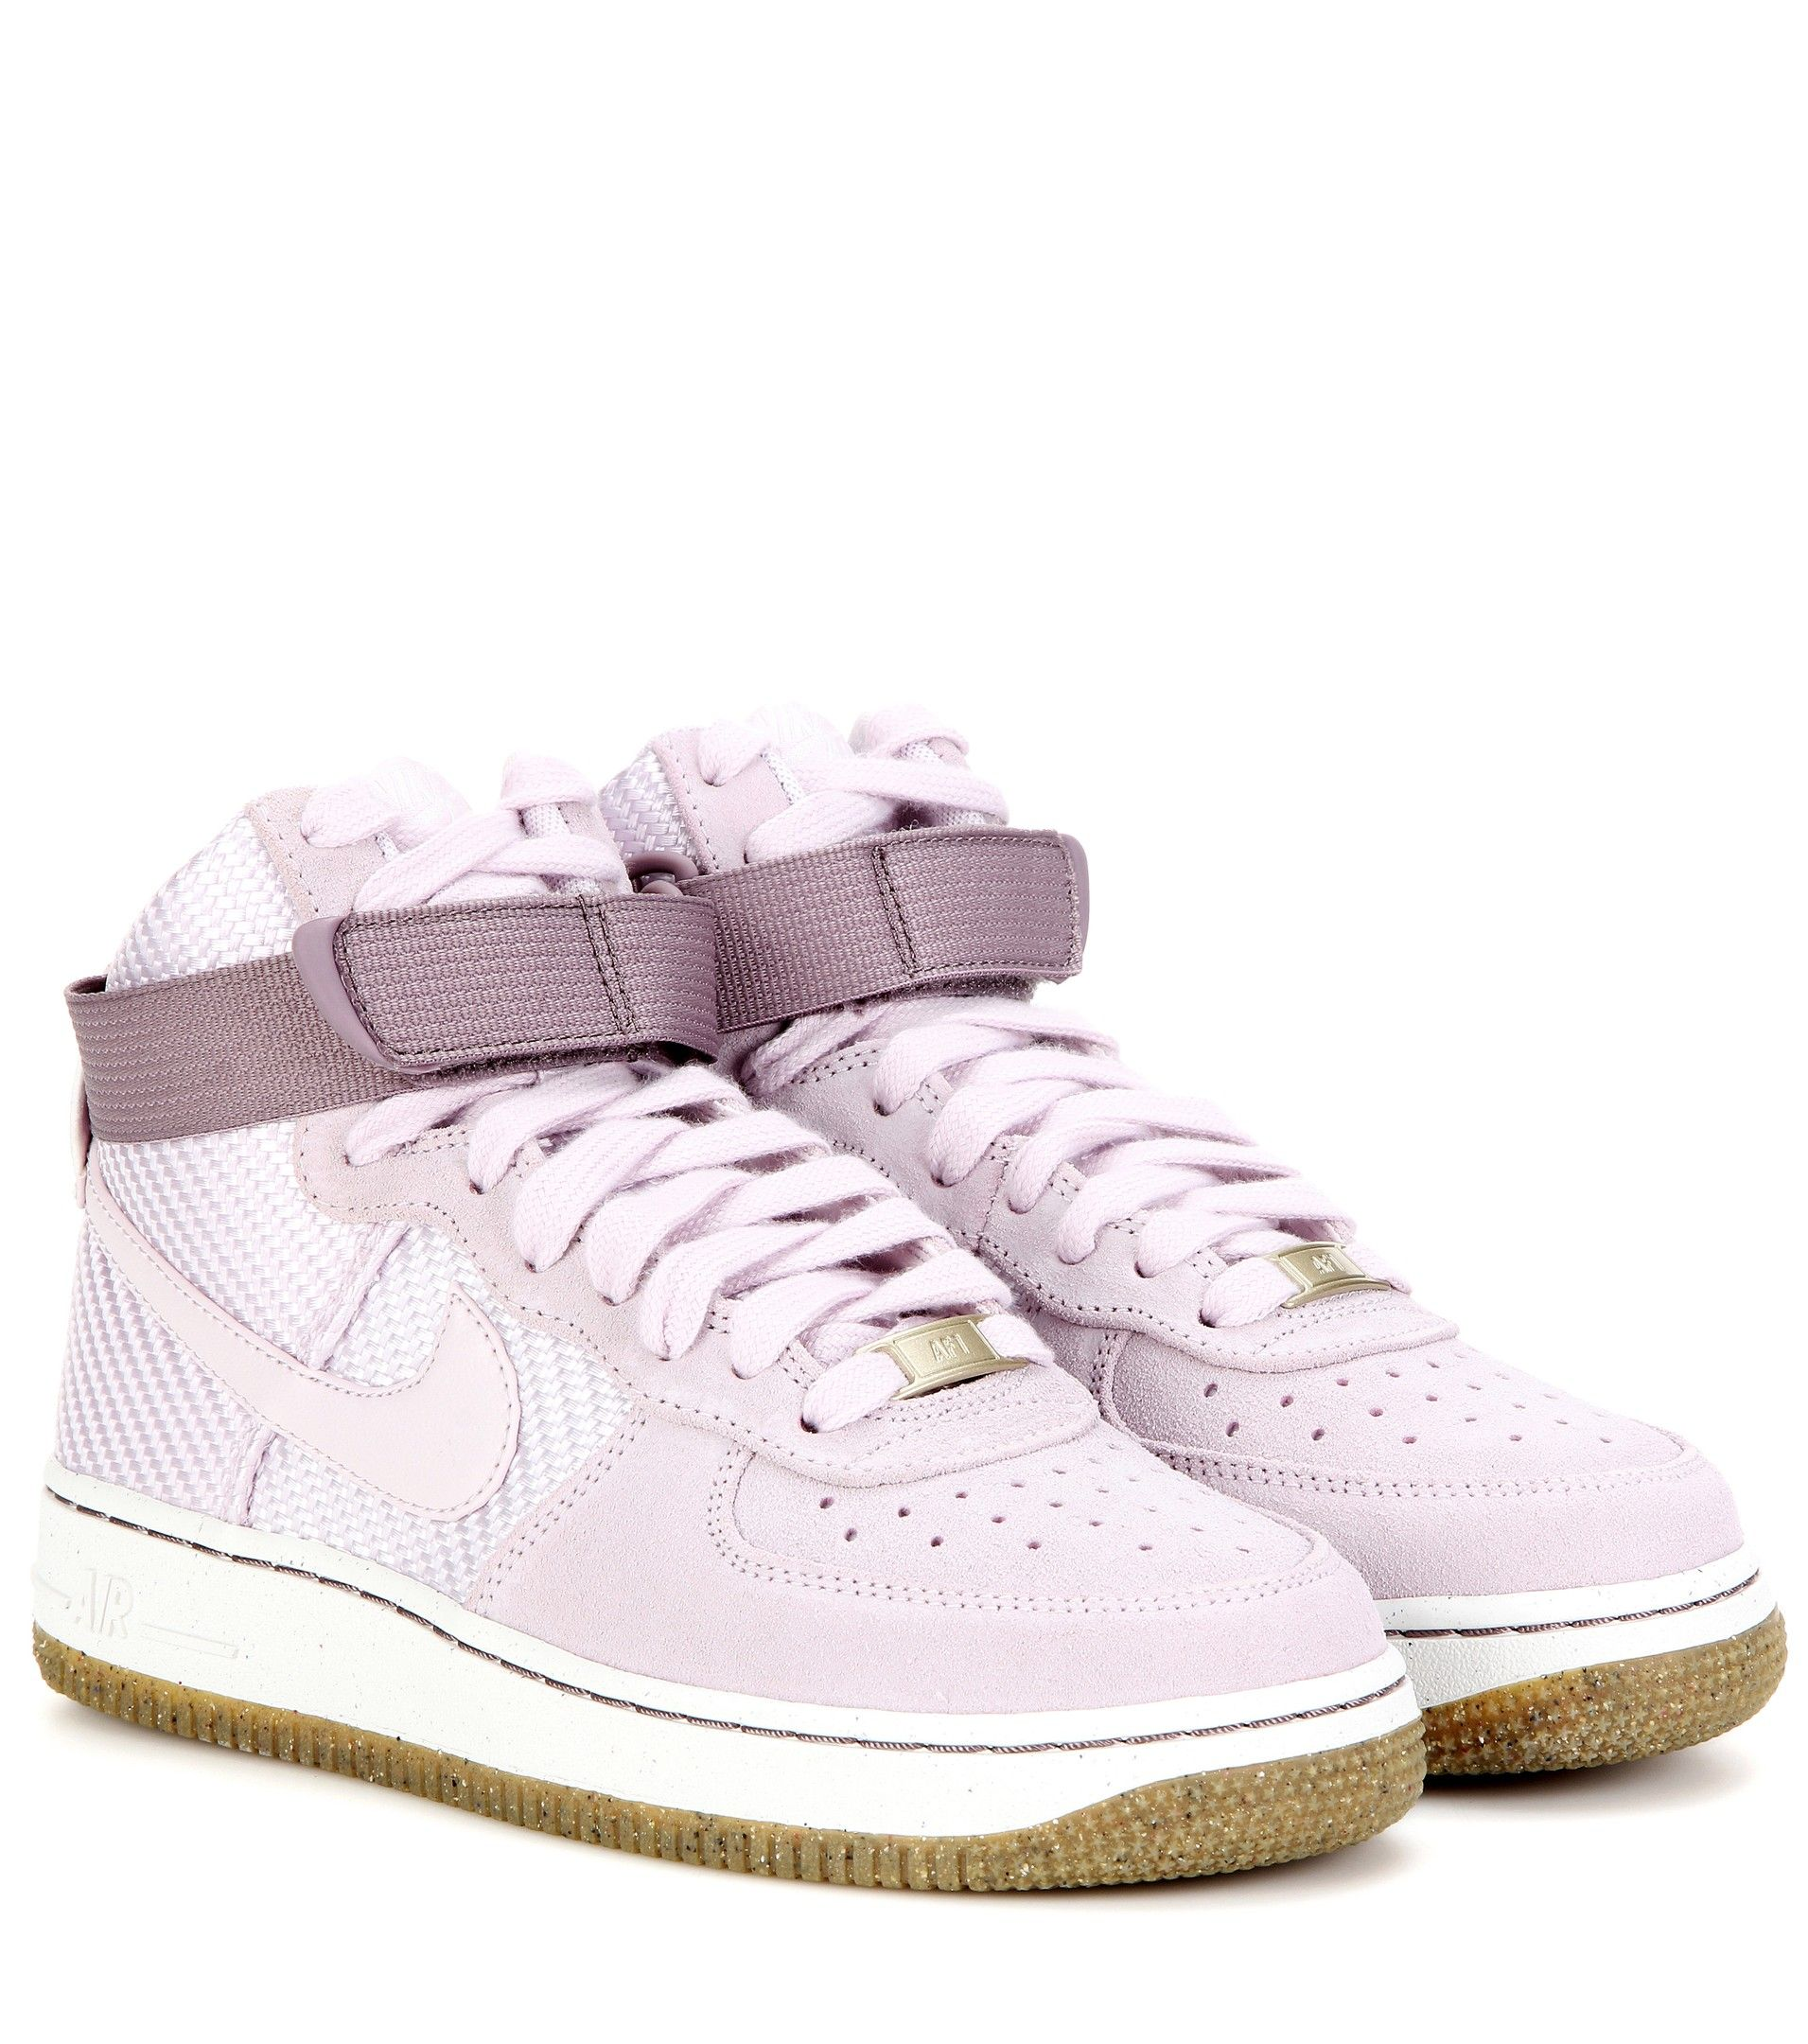 low priced d437d 62c33 mytheresa.com - Sneakers Nike Air Force 1 Hi Premium - Luxury Fashion for  Women   Designer clothing, shoes, bags